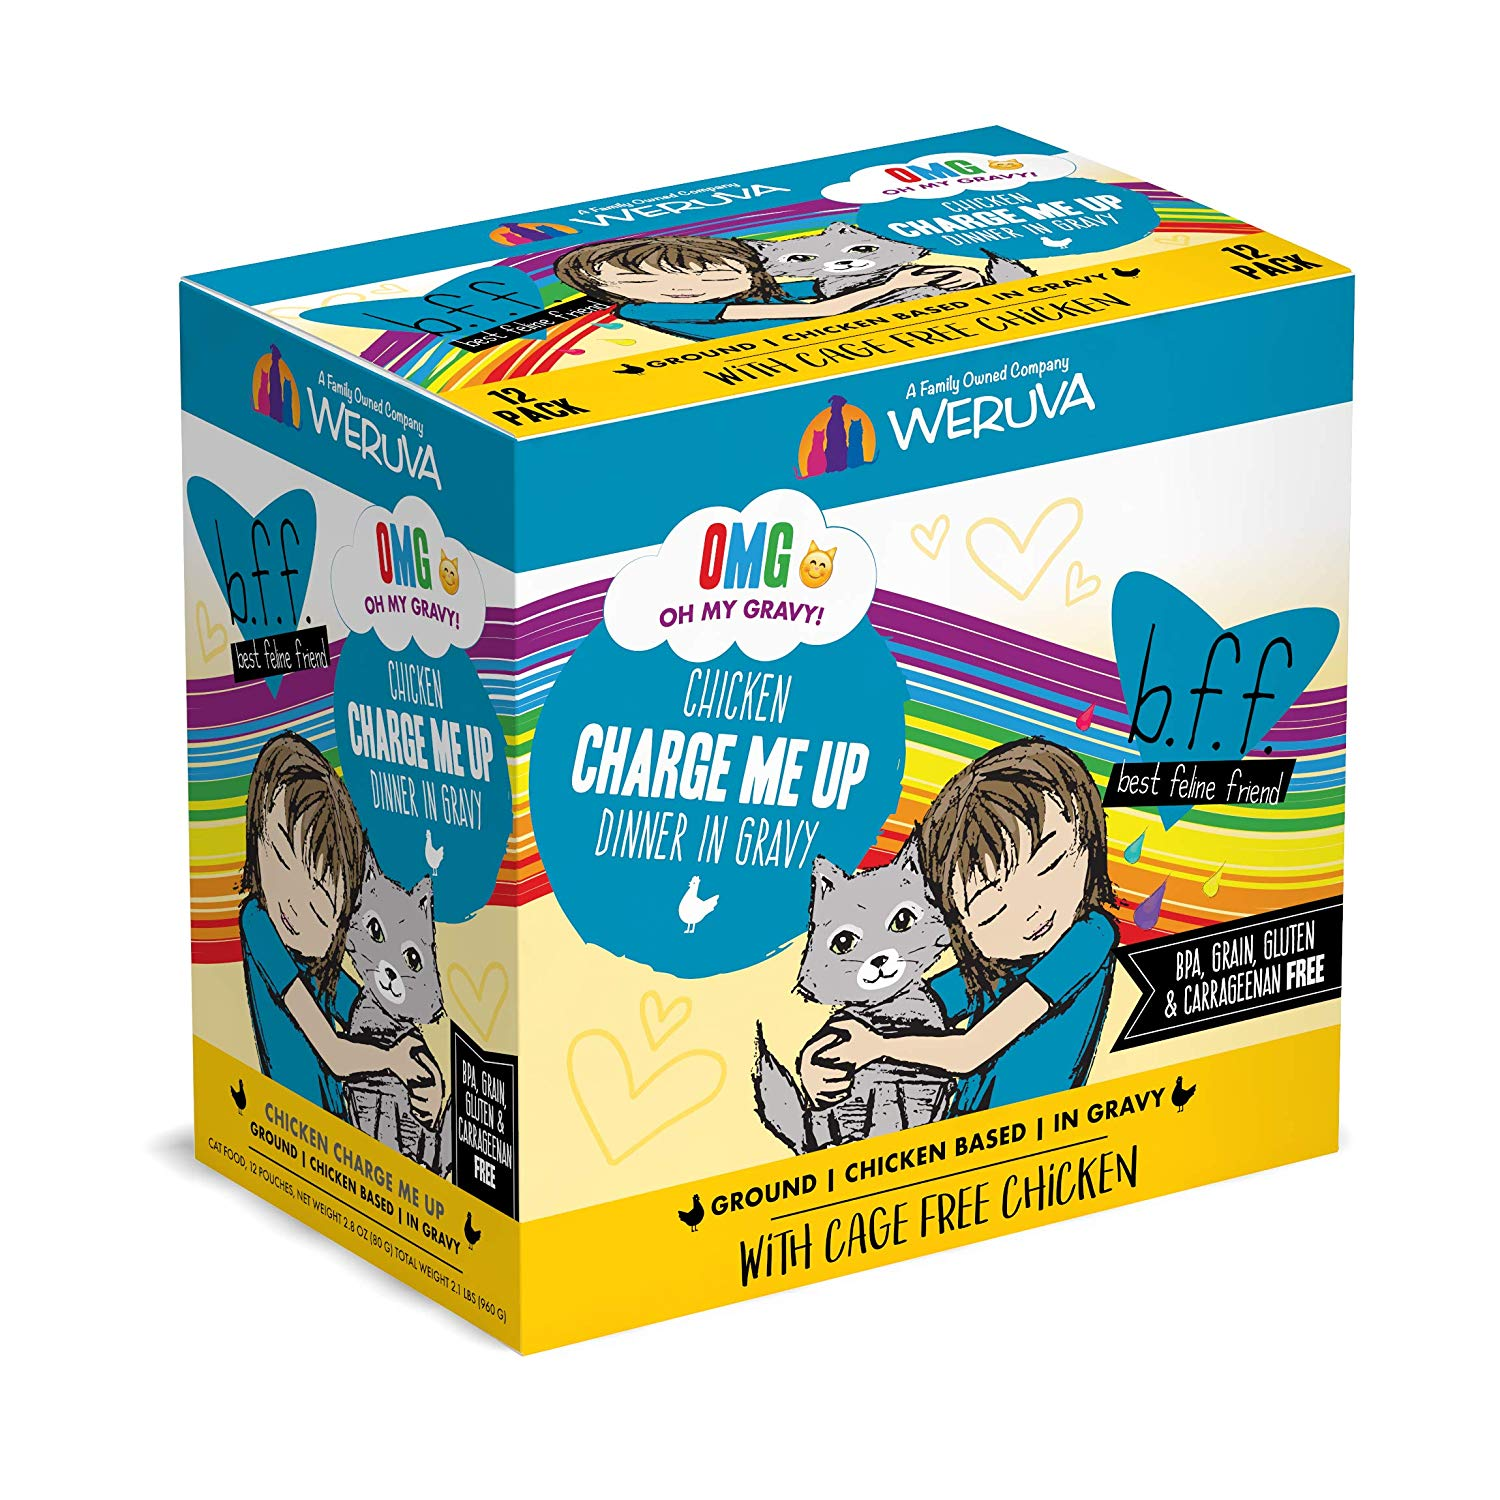 BFF Oh My Gravy! Charge Me Up! Chicken Dinner in Gravy Grain-Free Wet Cat Food, 3-oz pouch, case of 12